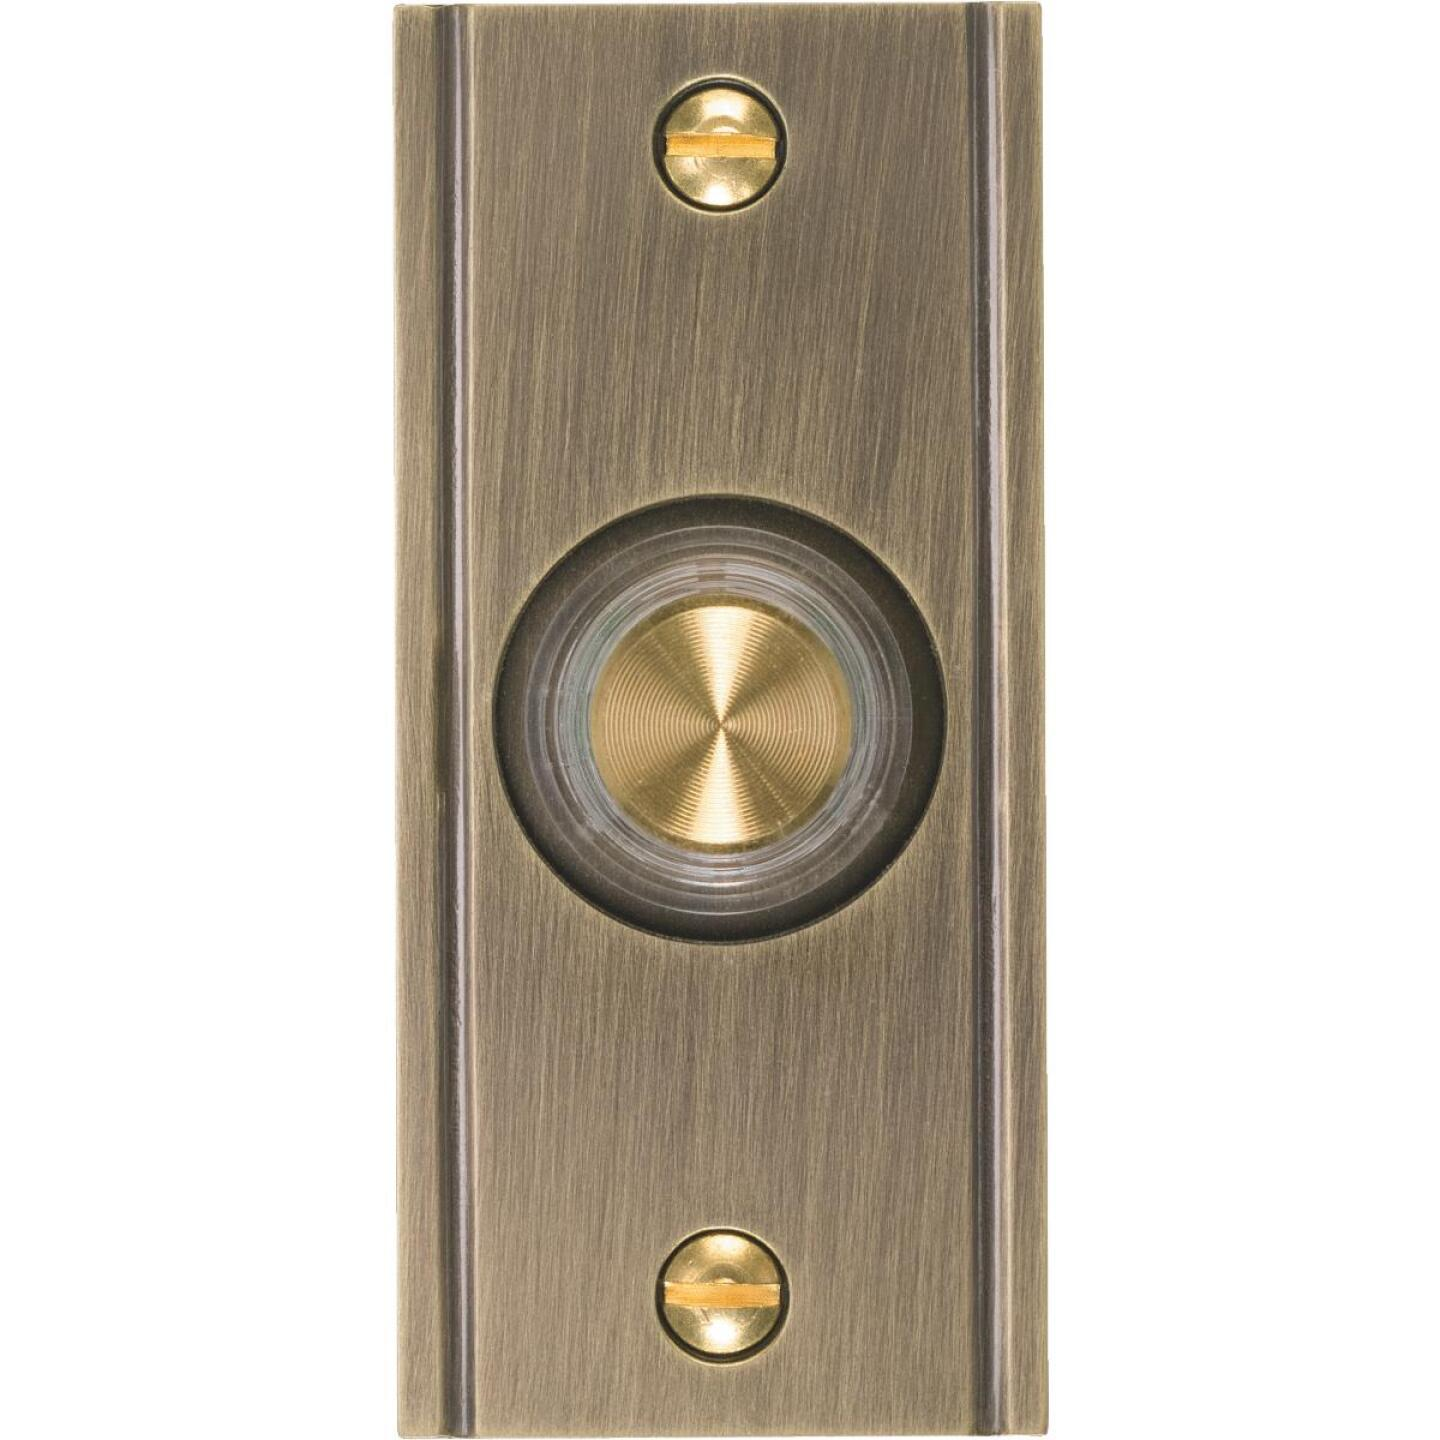 IQ America Wired Antique Brass Lighted Doorbell Push-Button Image 1